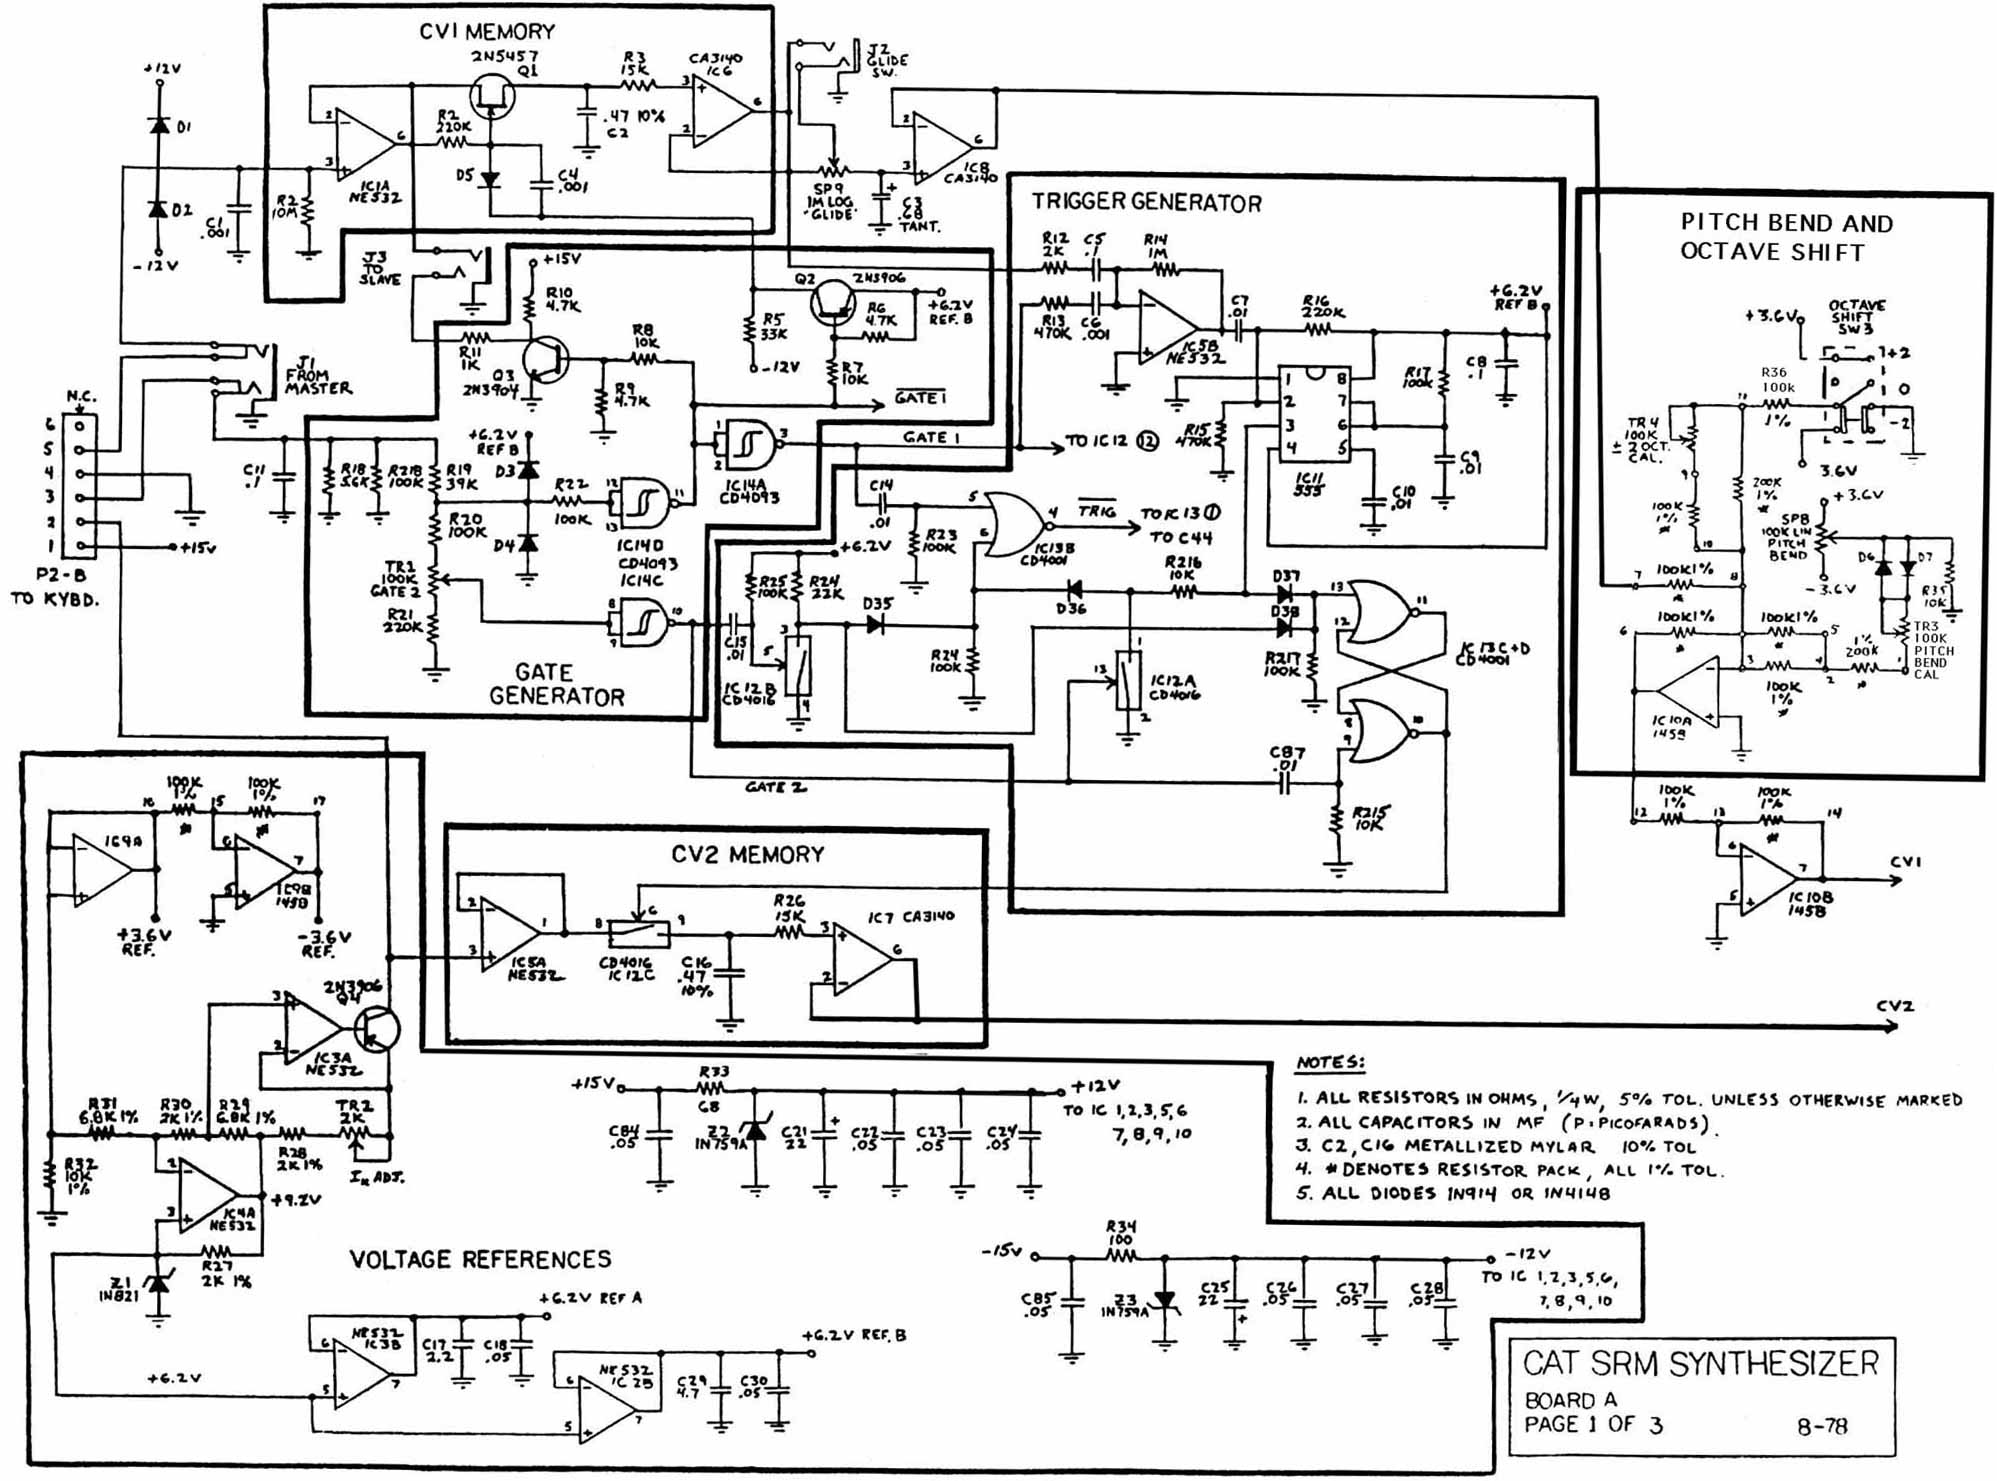 Beautiful Warn A2000 Wiring Diagram Ideas - The Wire - magnox.info